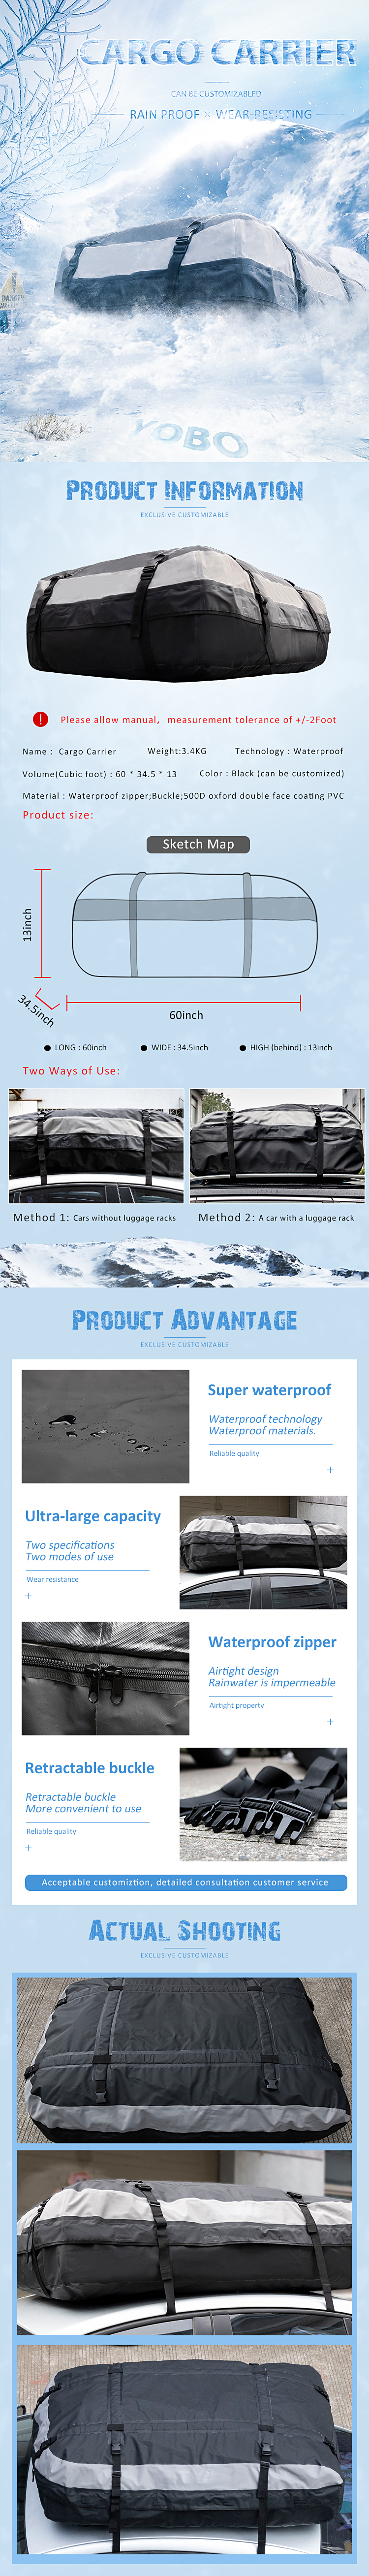 Premium quality cargo carrier professional car Waterproof Roof Top Bag fits vehicles with or without roof racks